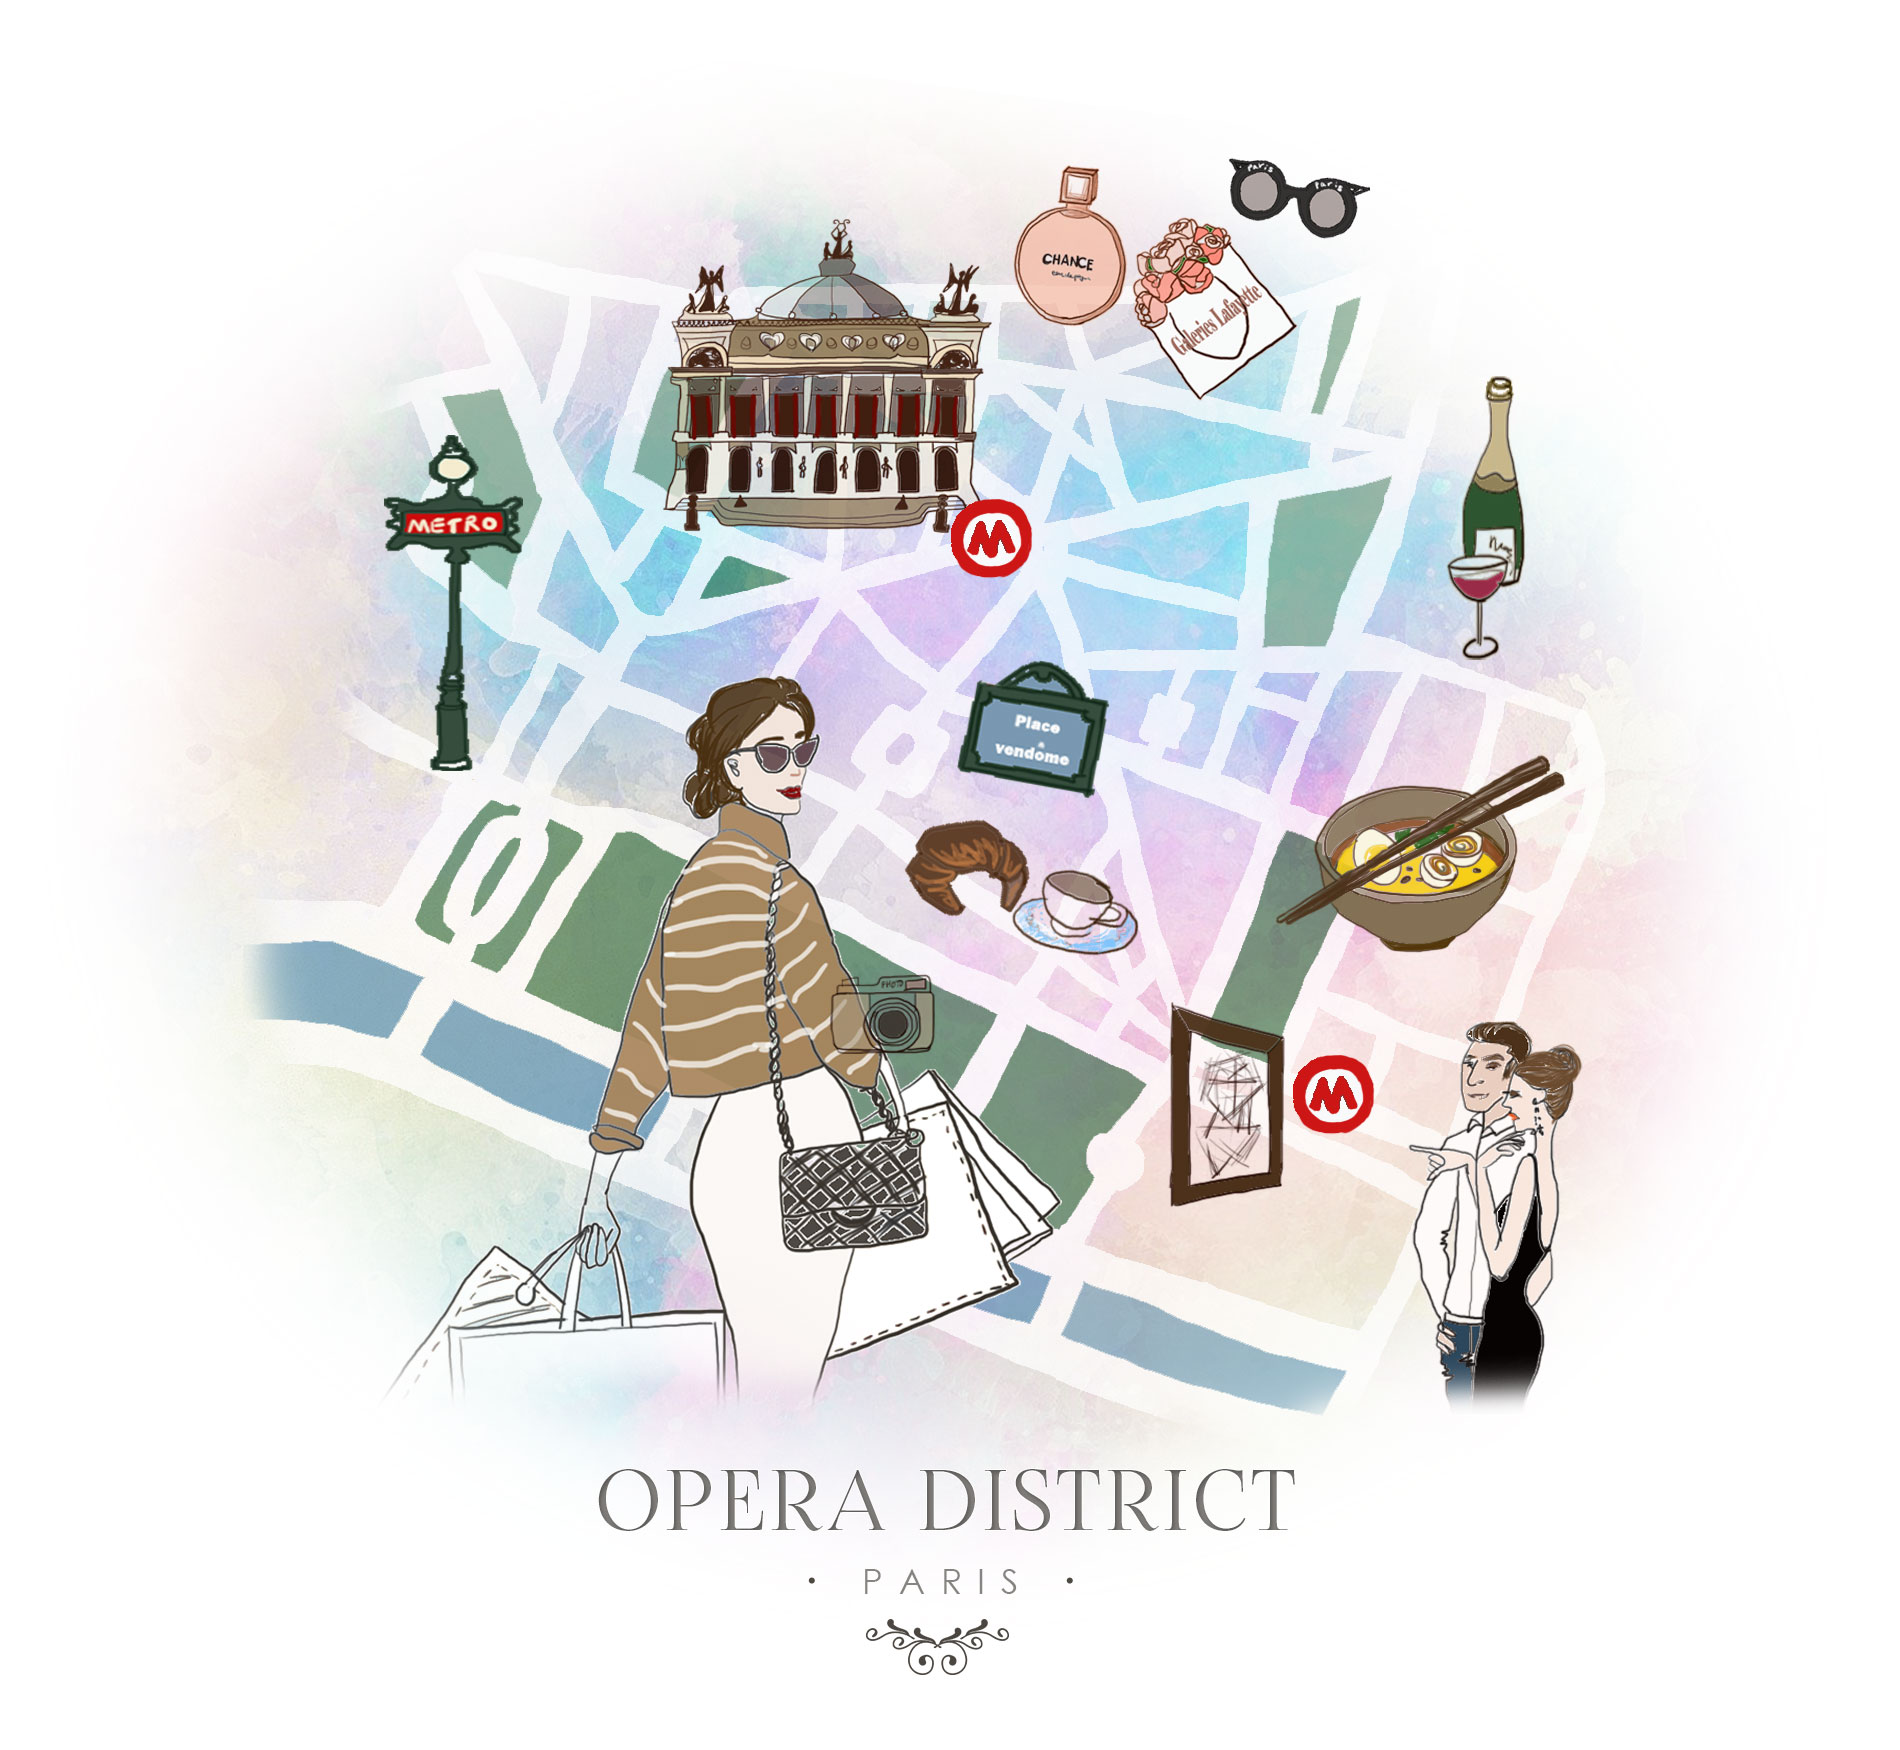 Paris - What to do in Opera district